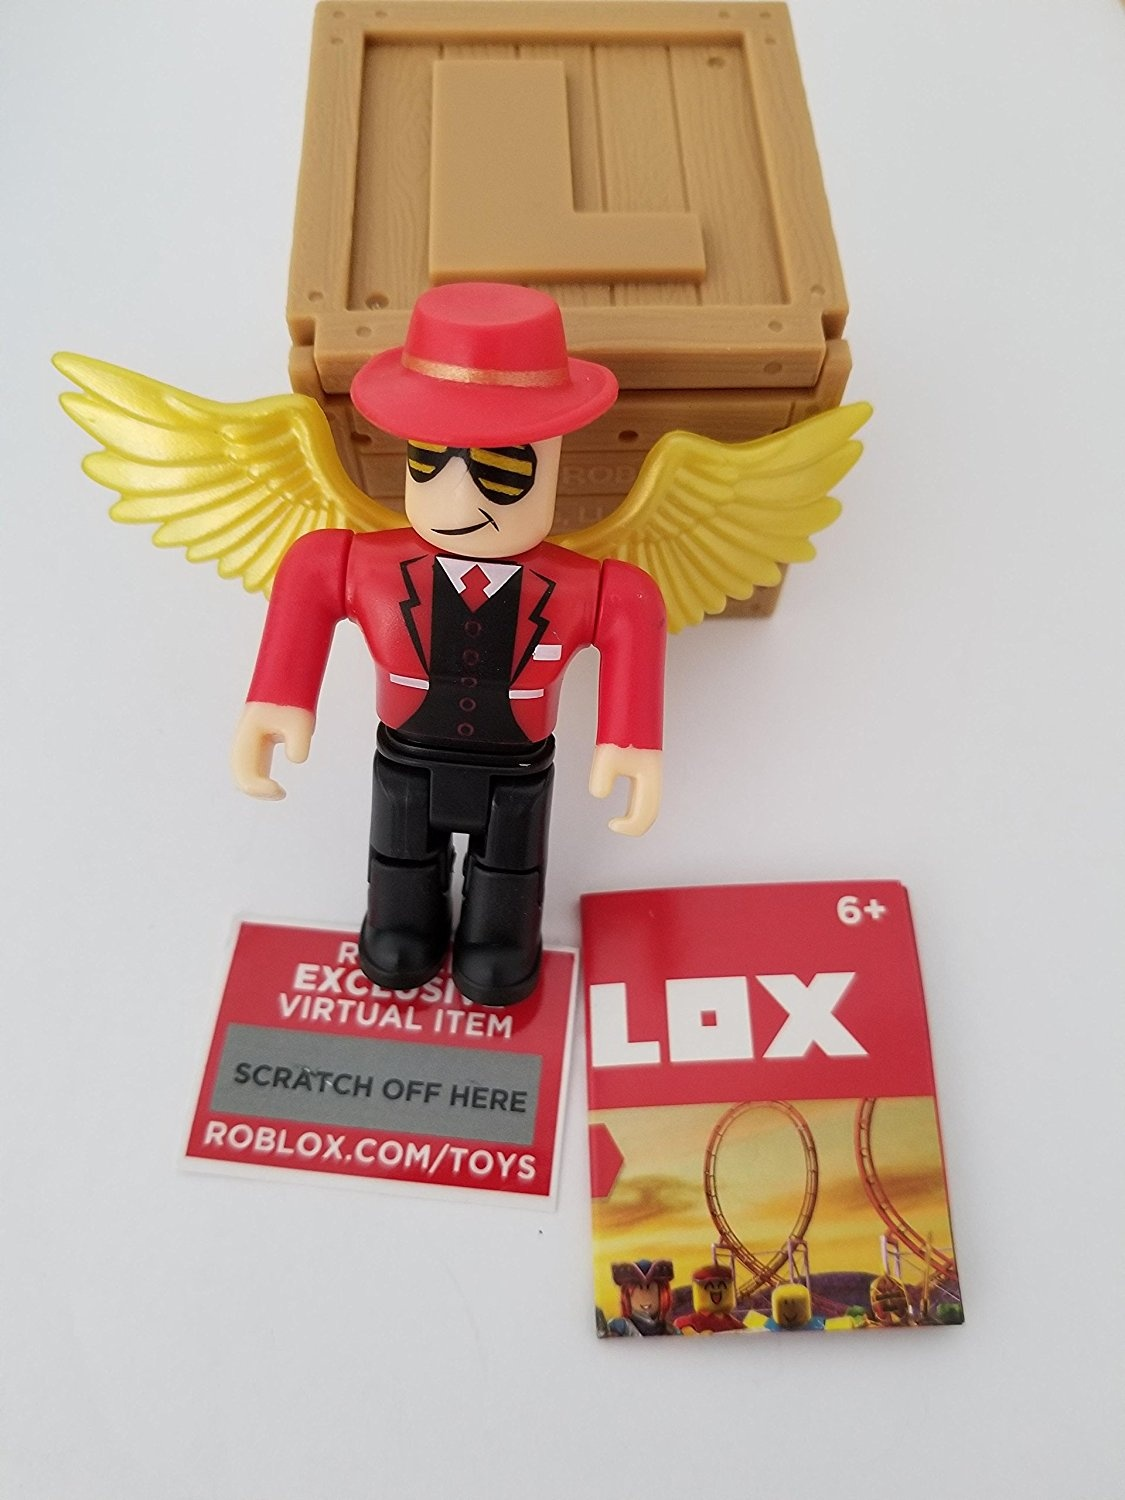 Roblox All Toy Code Items Roblox Series 2 Cindering Action Figure Mystery Box Virtual Item Code 6 4cm By Roblox Shop Online For Toys In The United States